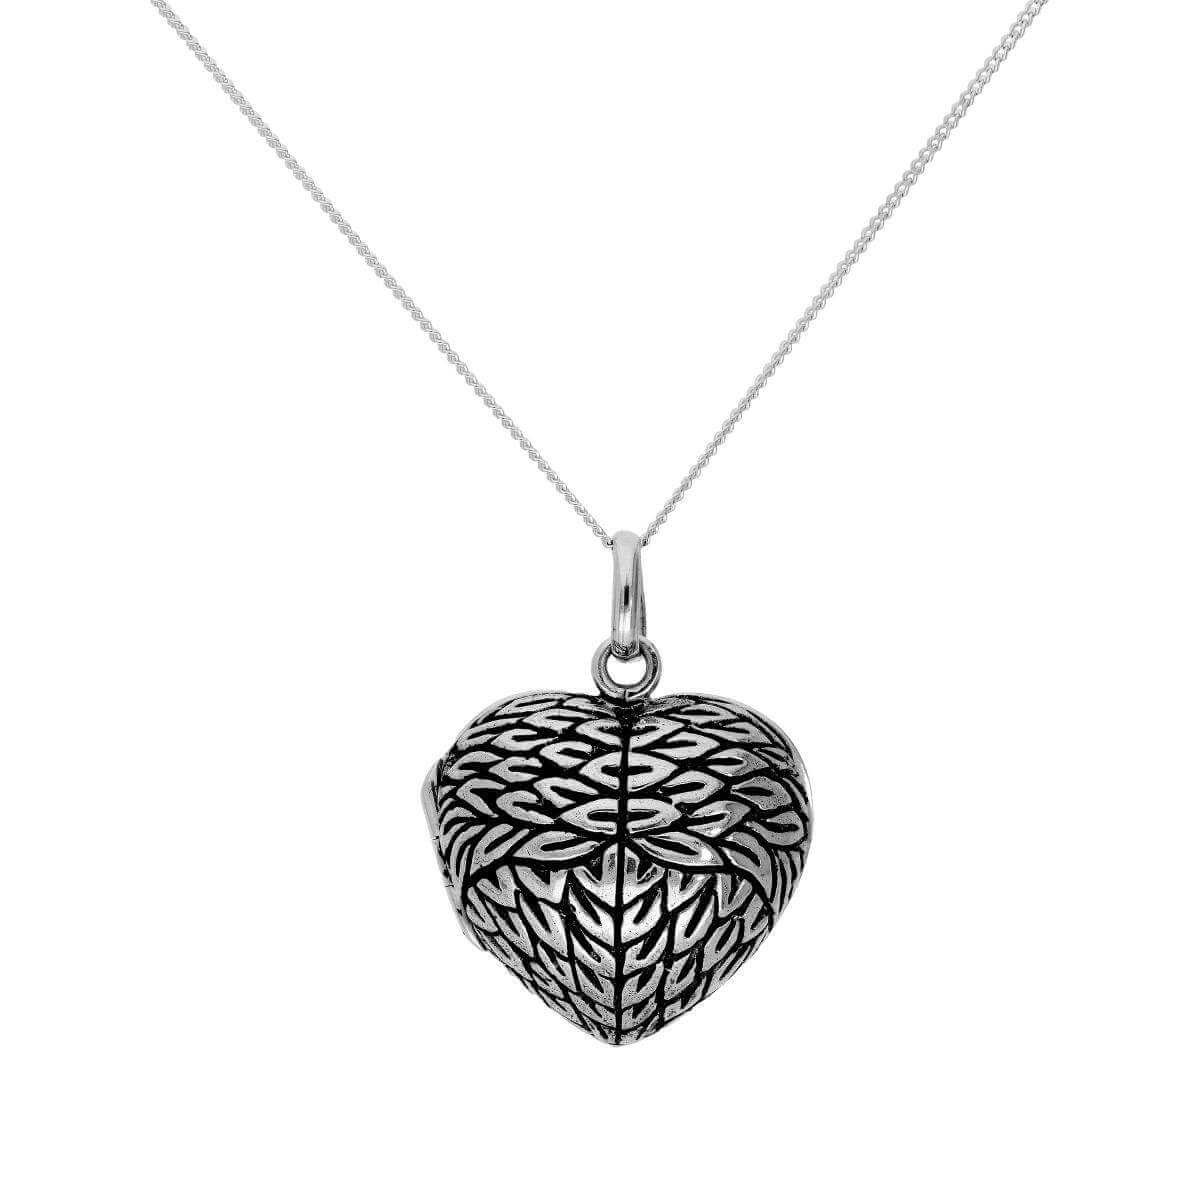 Sterling Silver Engravable Angel Wing Heart Locket on Chain 16 - 22 Inches